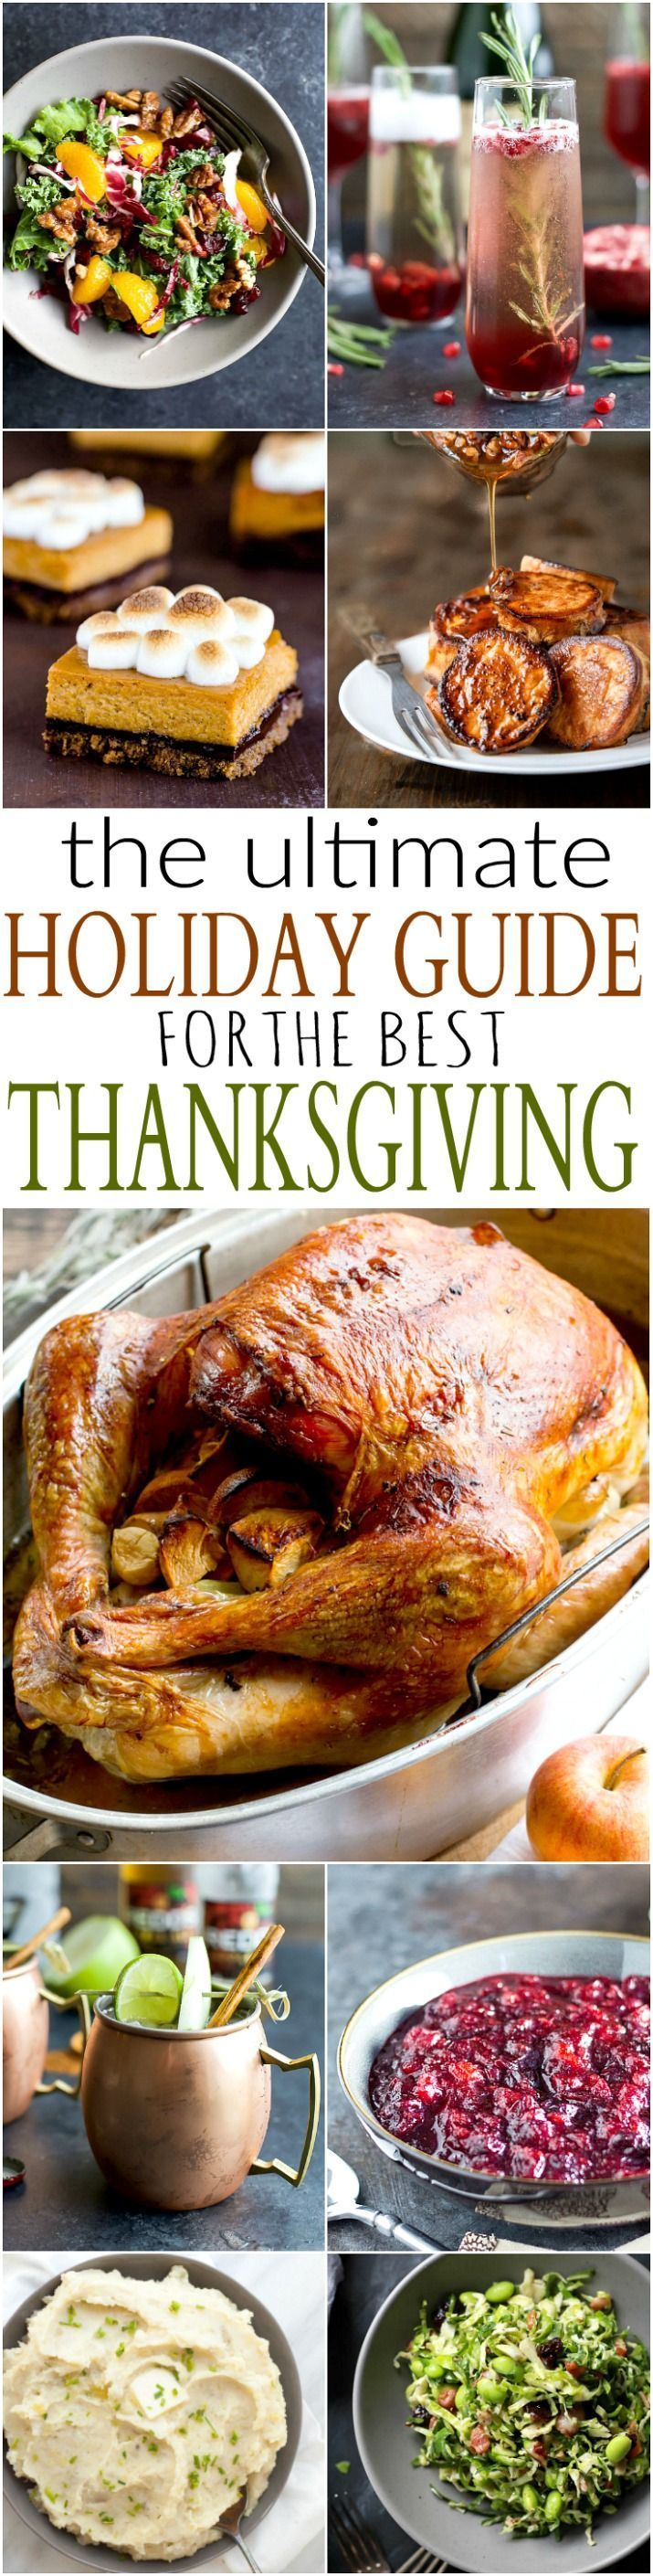 Look no further with the ULTIMATE Holiday Guide for Thanksgiving! This Turkey Day roundup has 45+ Thanksgiving recipes to ensure that you have the BEST and most flavorful feast around! | joyfulhealthyeats...